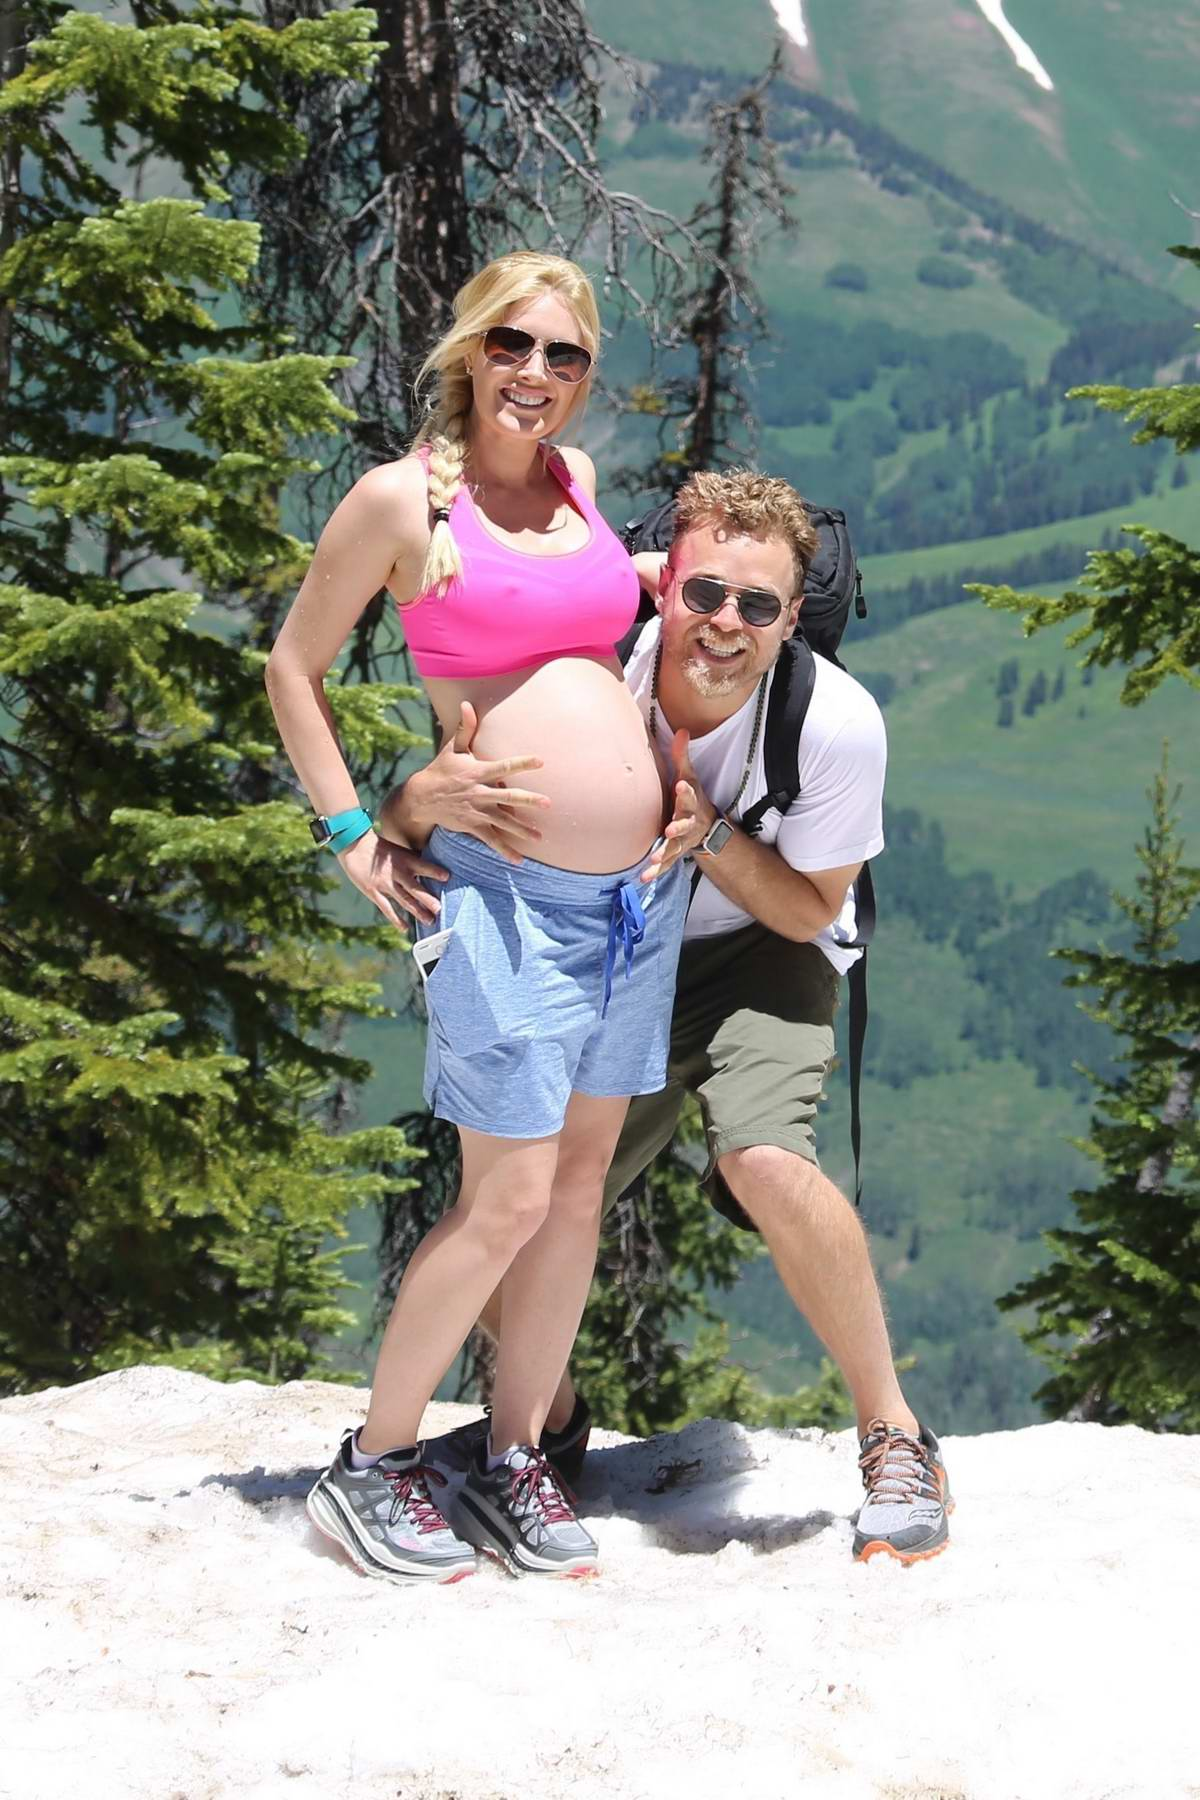 Heidi Montag and Spencer Pratt enjoying themselves in Mountain of Crested Butte, Colorado